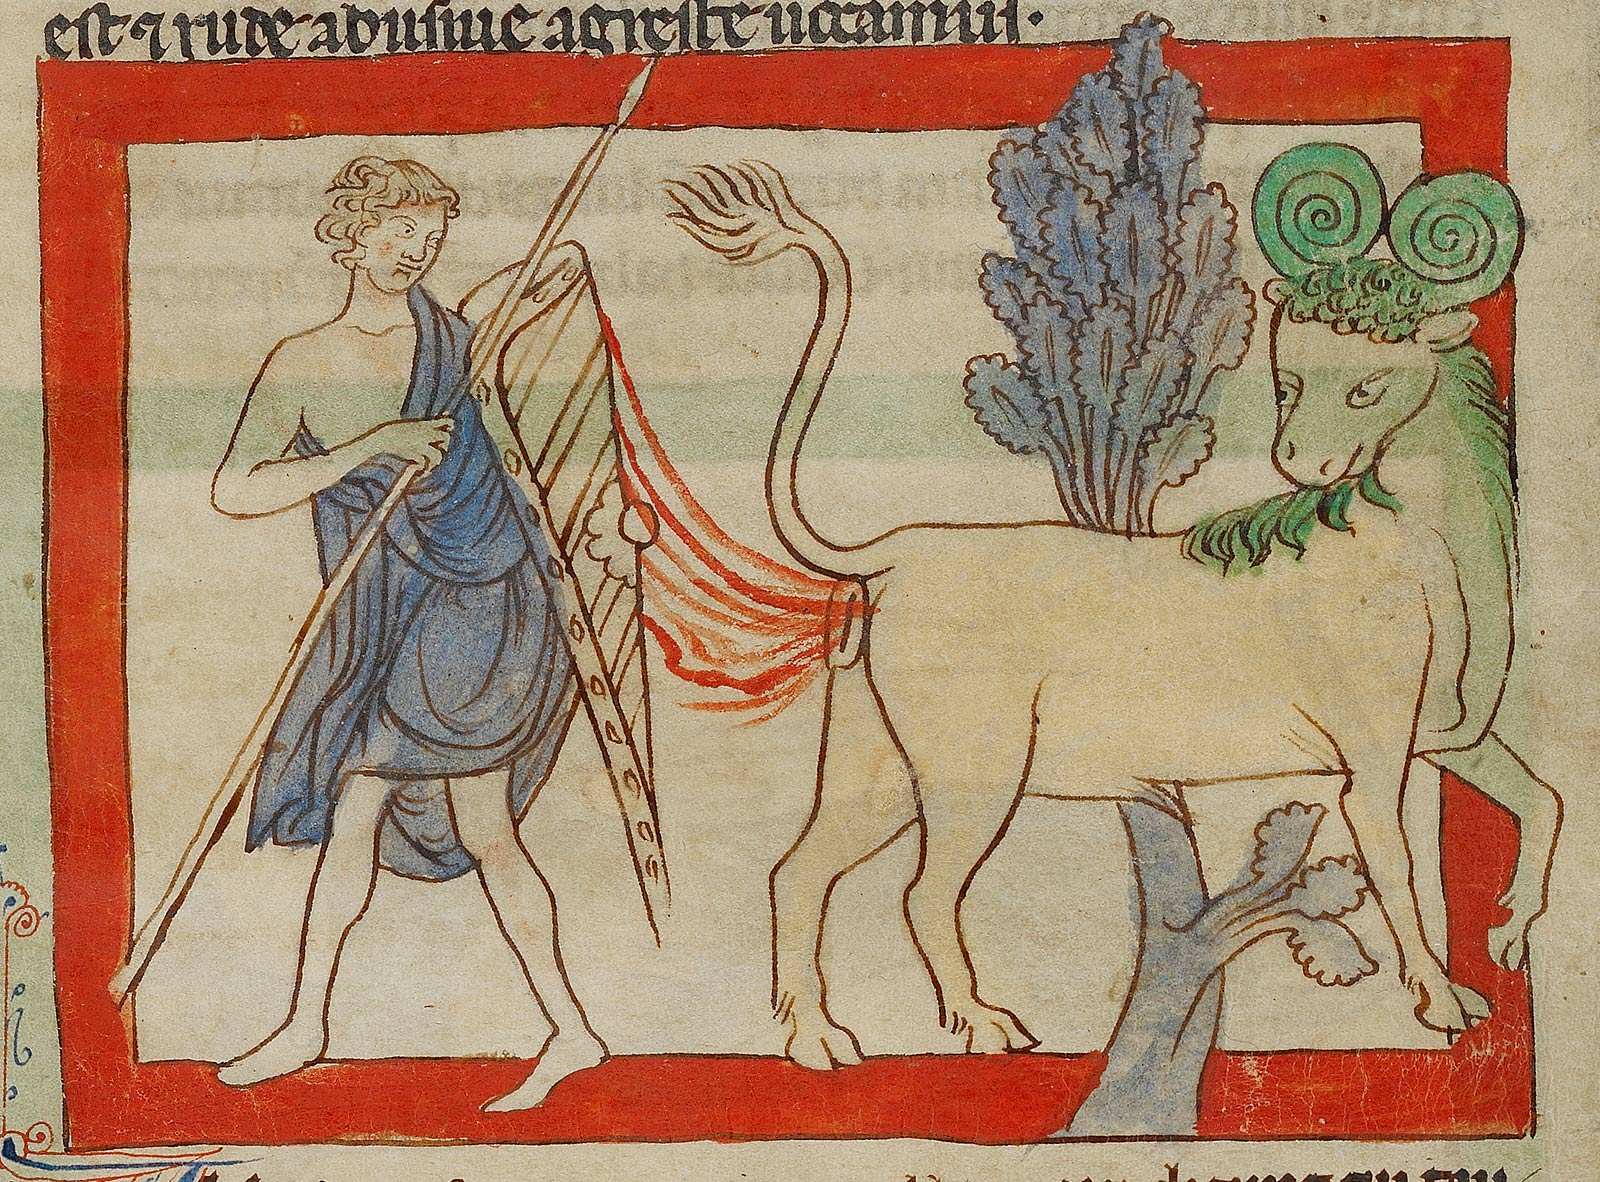 Illustration of a man with a staff holding up a shield to protect himself from a stream of dung shooting from the back of a grinning beast with curled horns